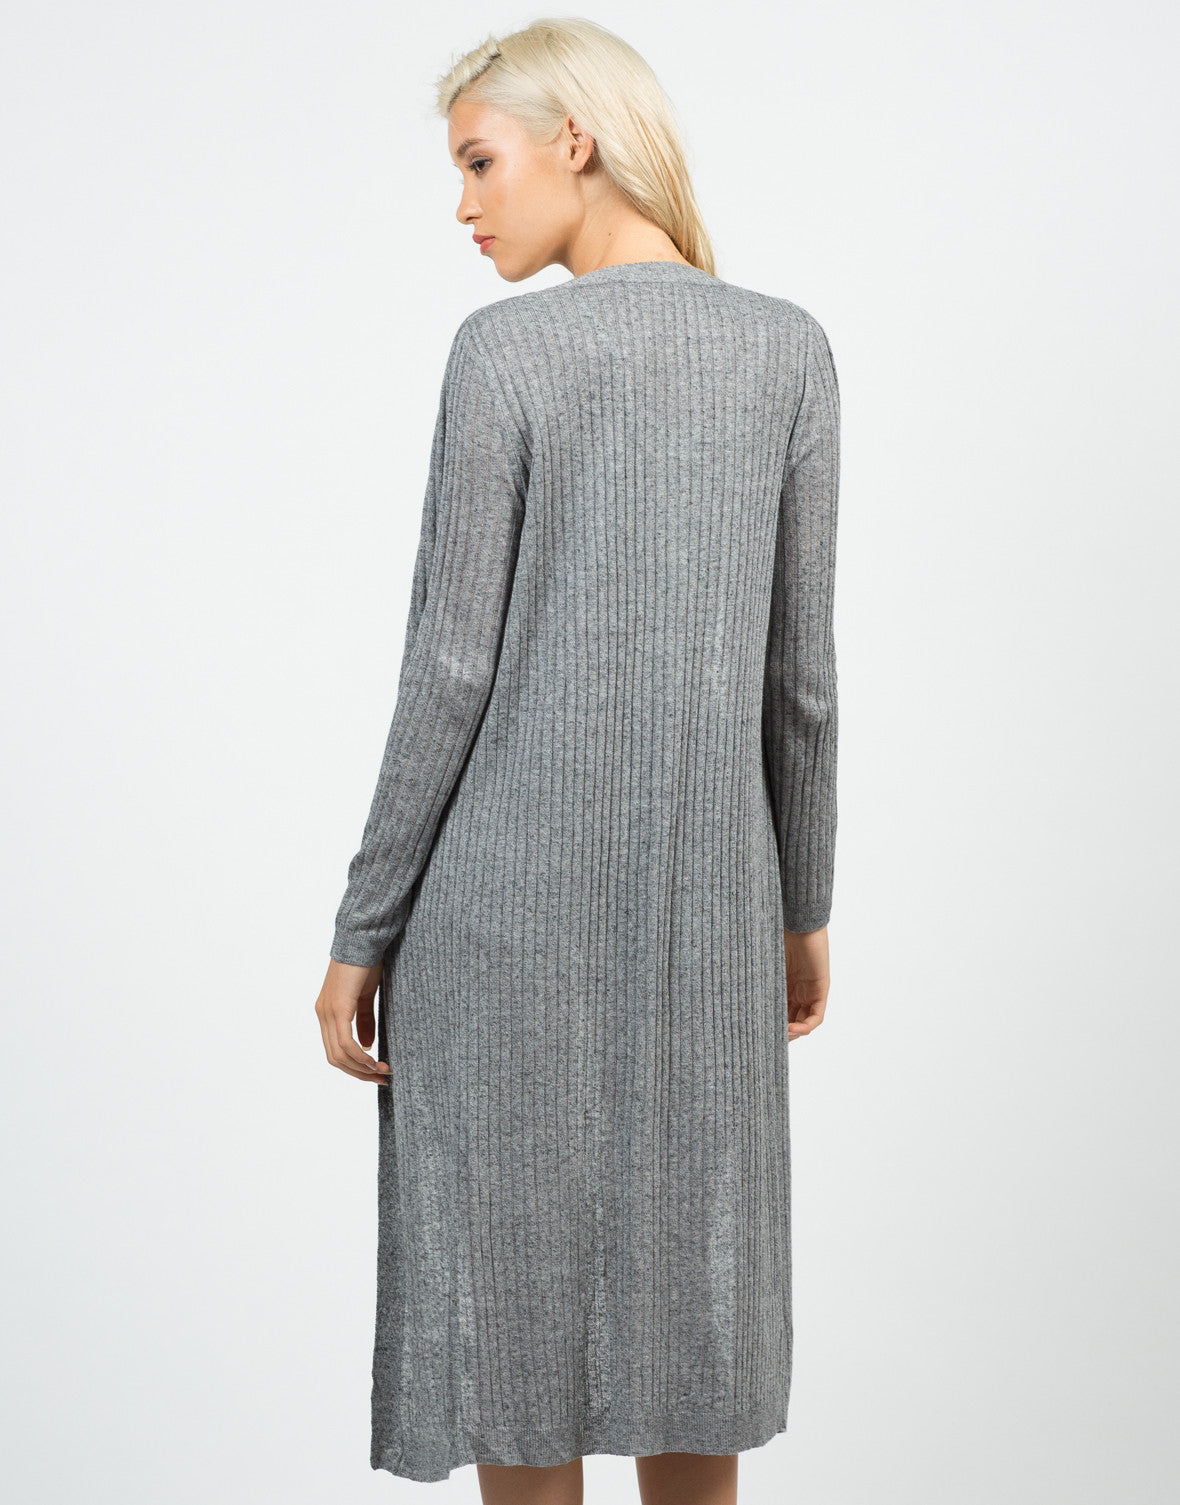 Back View of Long Ribbed Open Cardigan